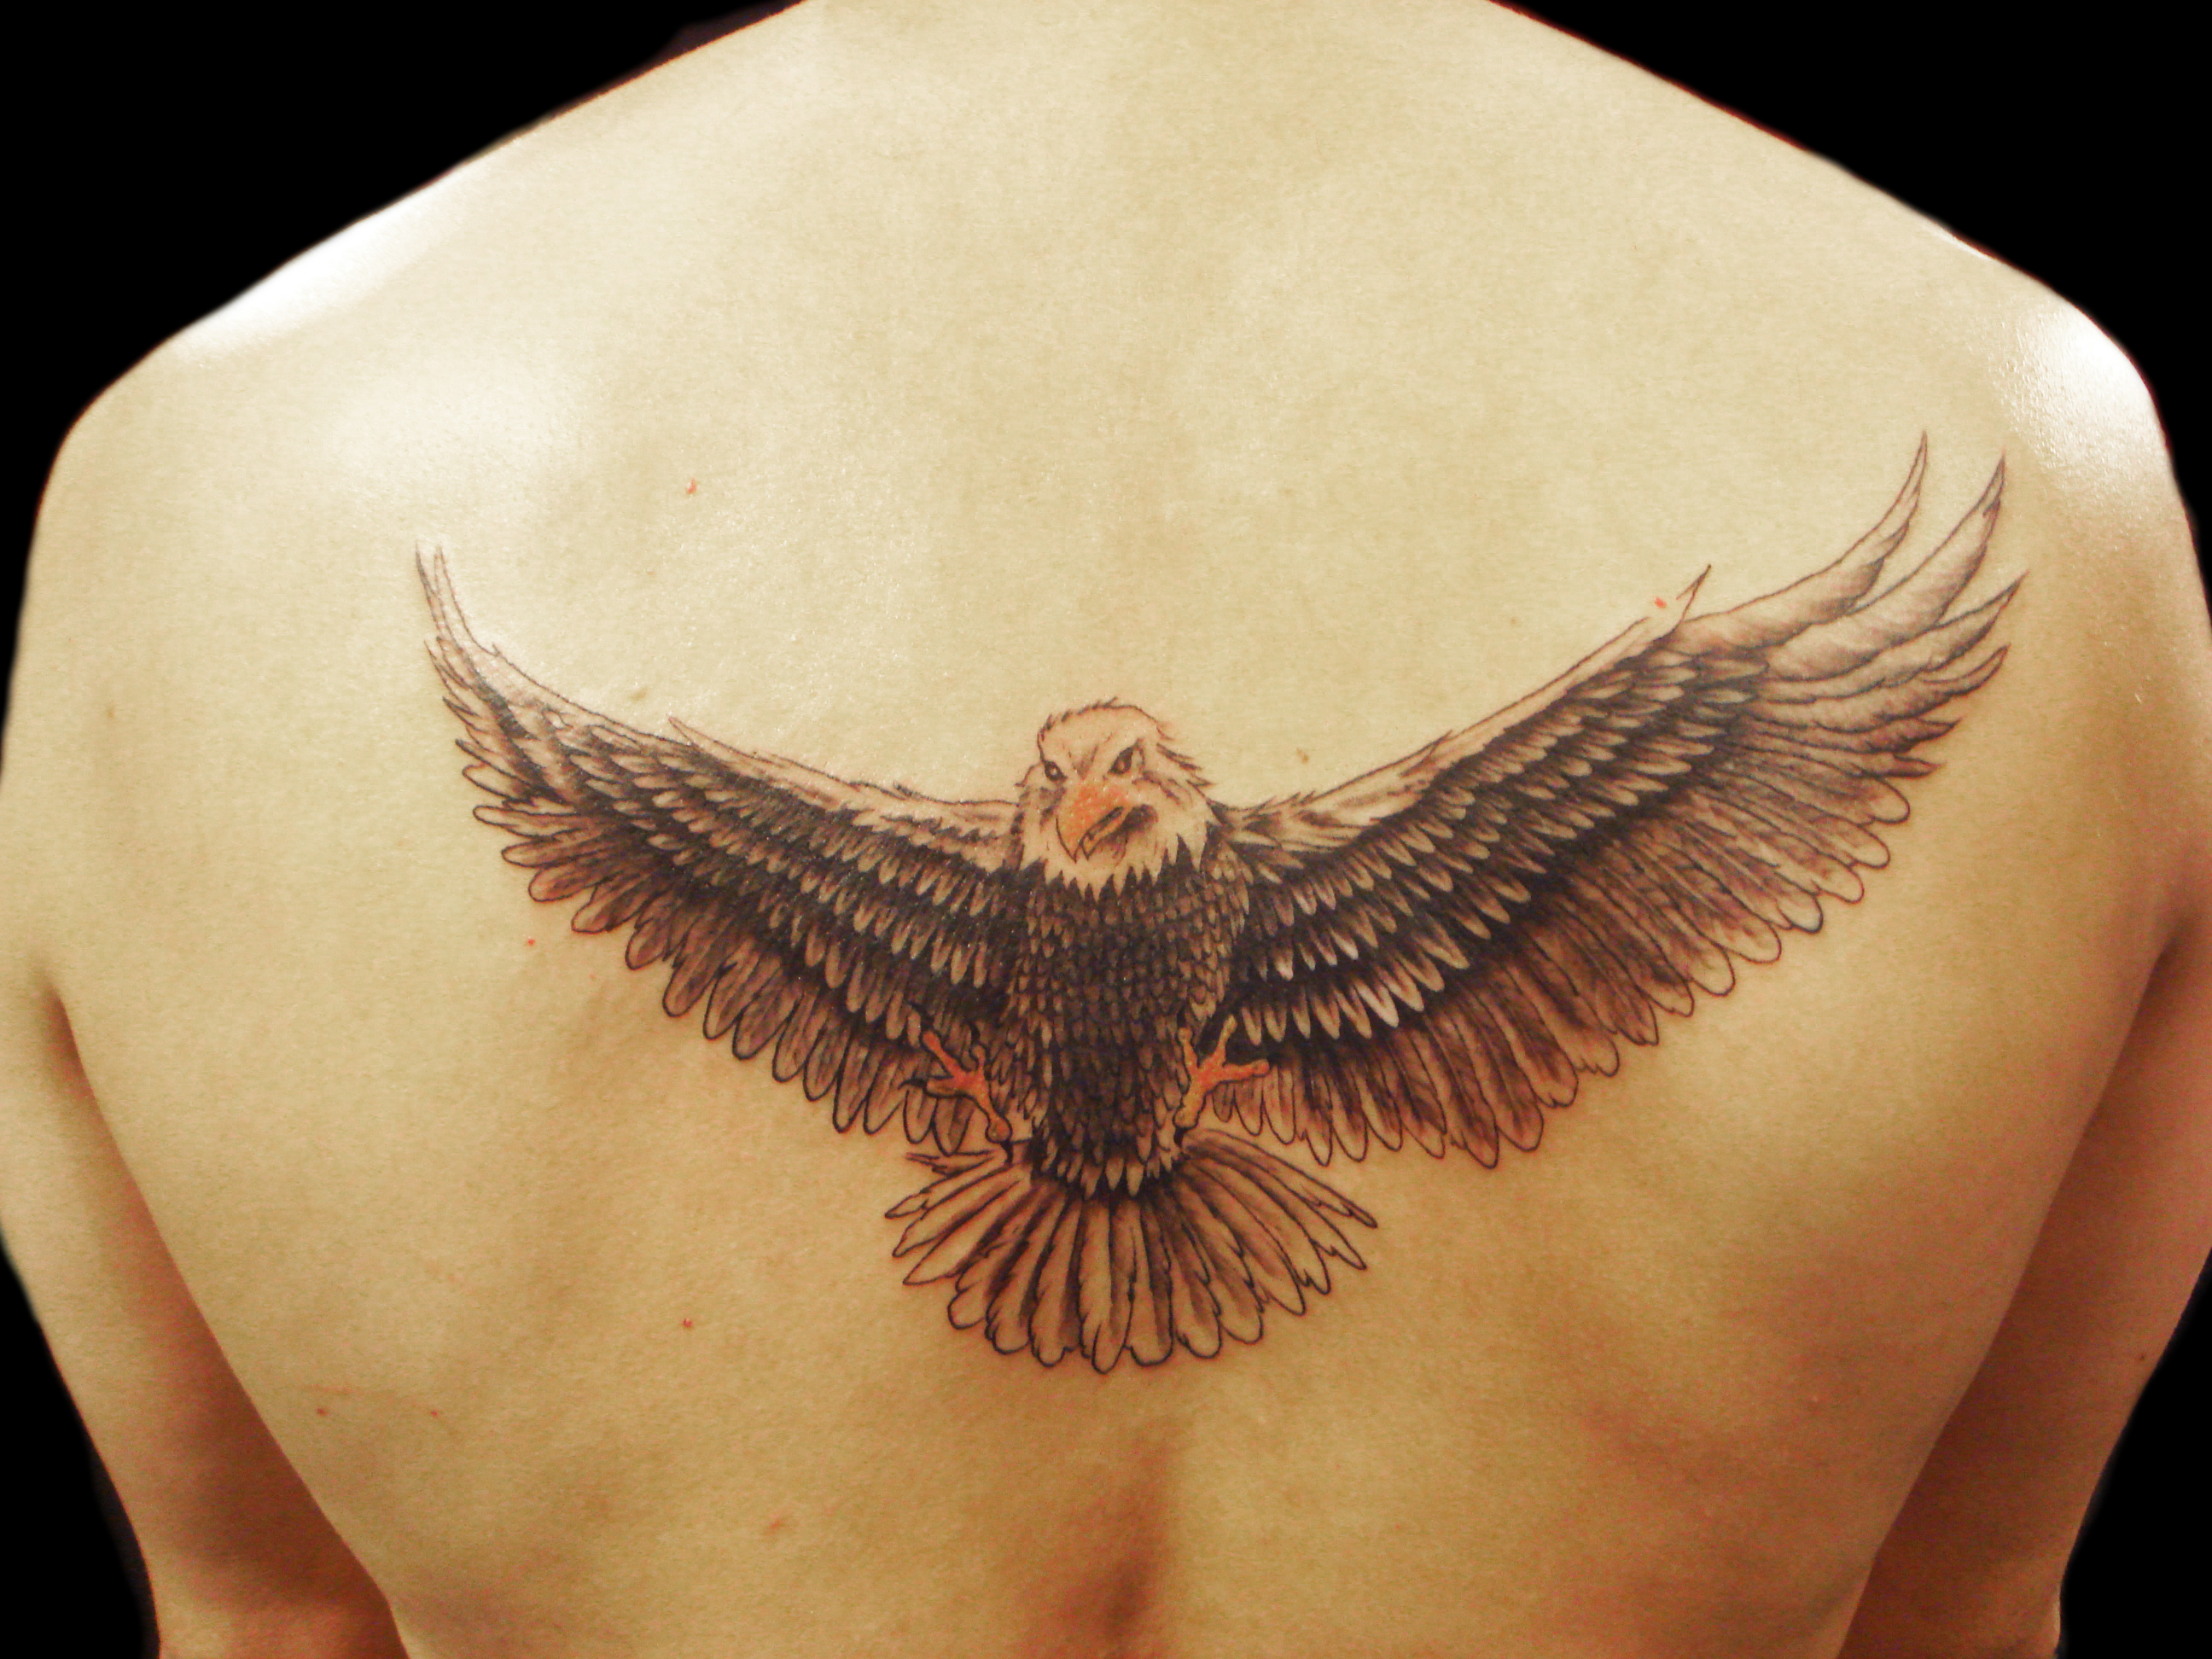 Eagle Tattoos Designs Ideas And Meaning Tattoos For You Ideas And Designs